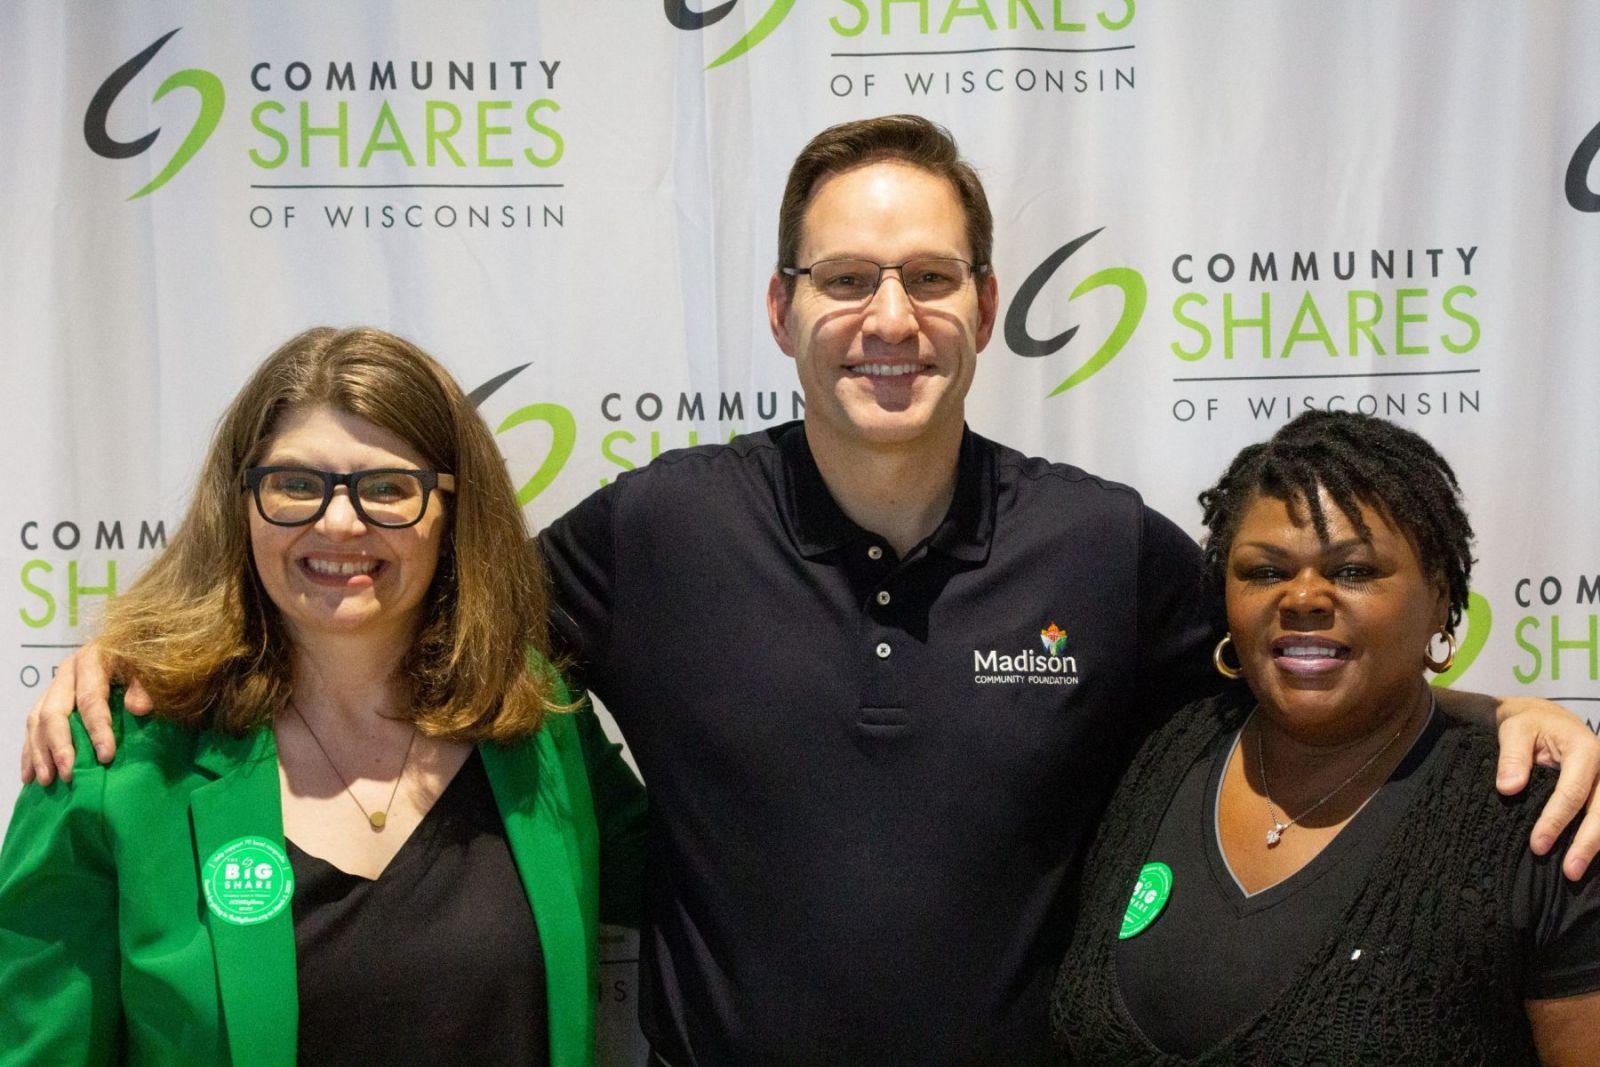 Madison Community Foundation and CSW photo